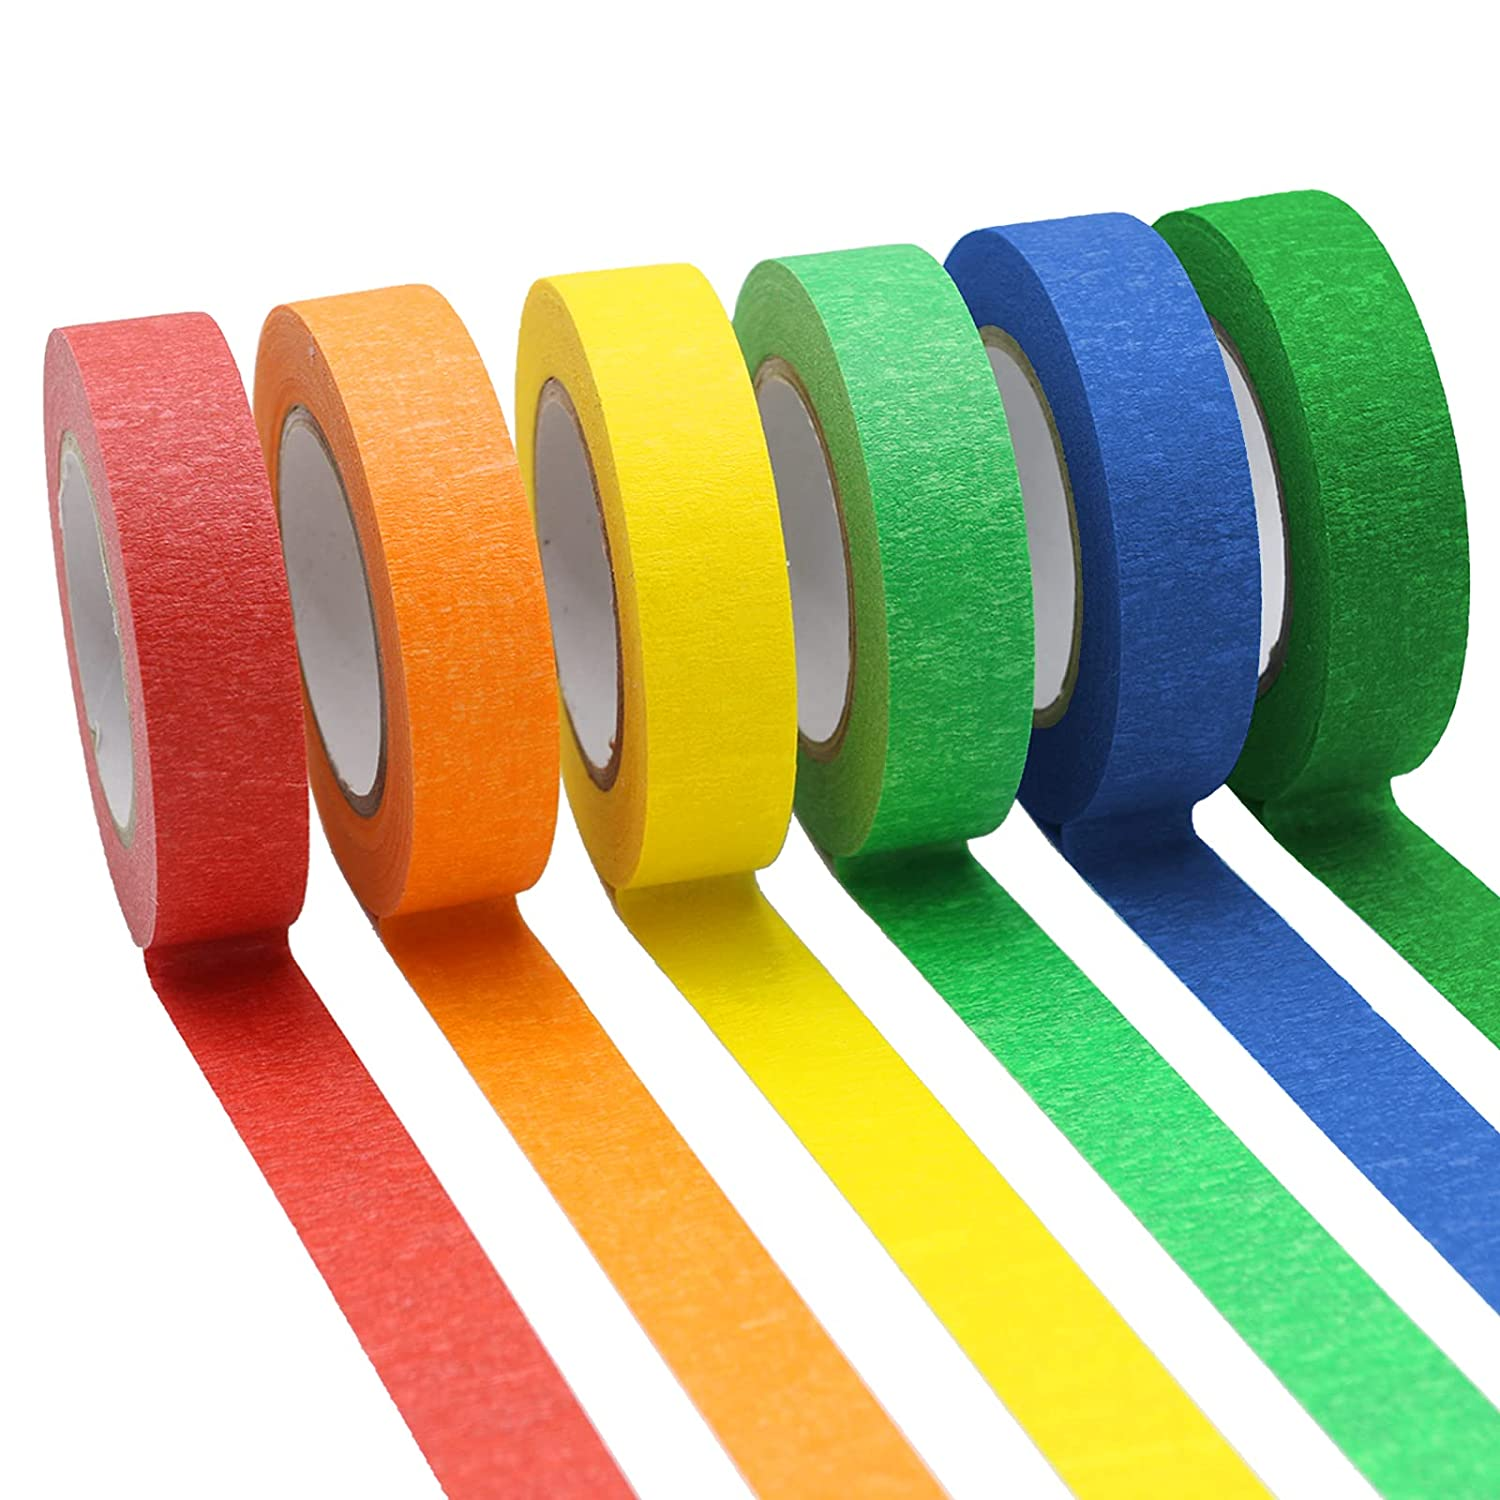 6 Colored Masking Tape 16 Yard Per Roll, Rainbow Colors Painting Tape, Painters Tape, Craft Tape, Labeling Tape, Paper Tape for Bullet Journals, Party Decorations, DIY Craft, 0.6 Inch Wide